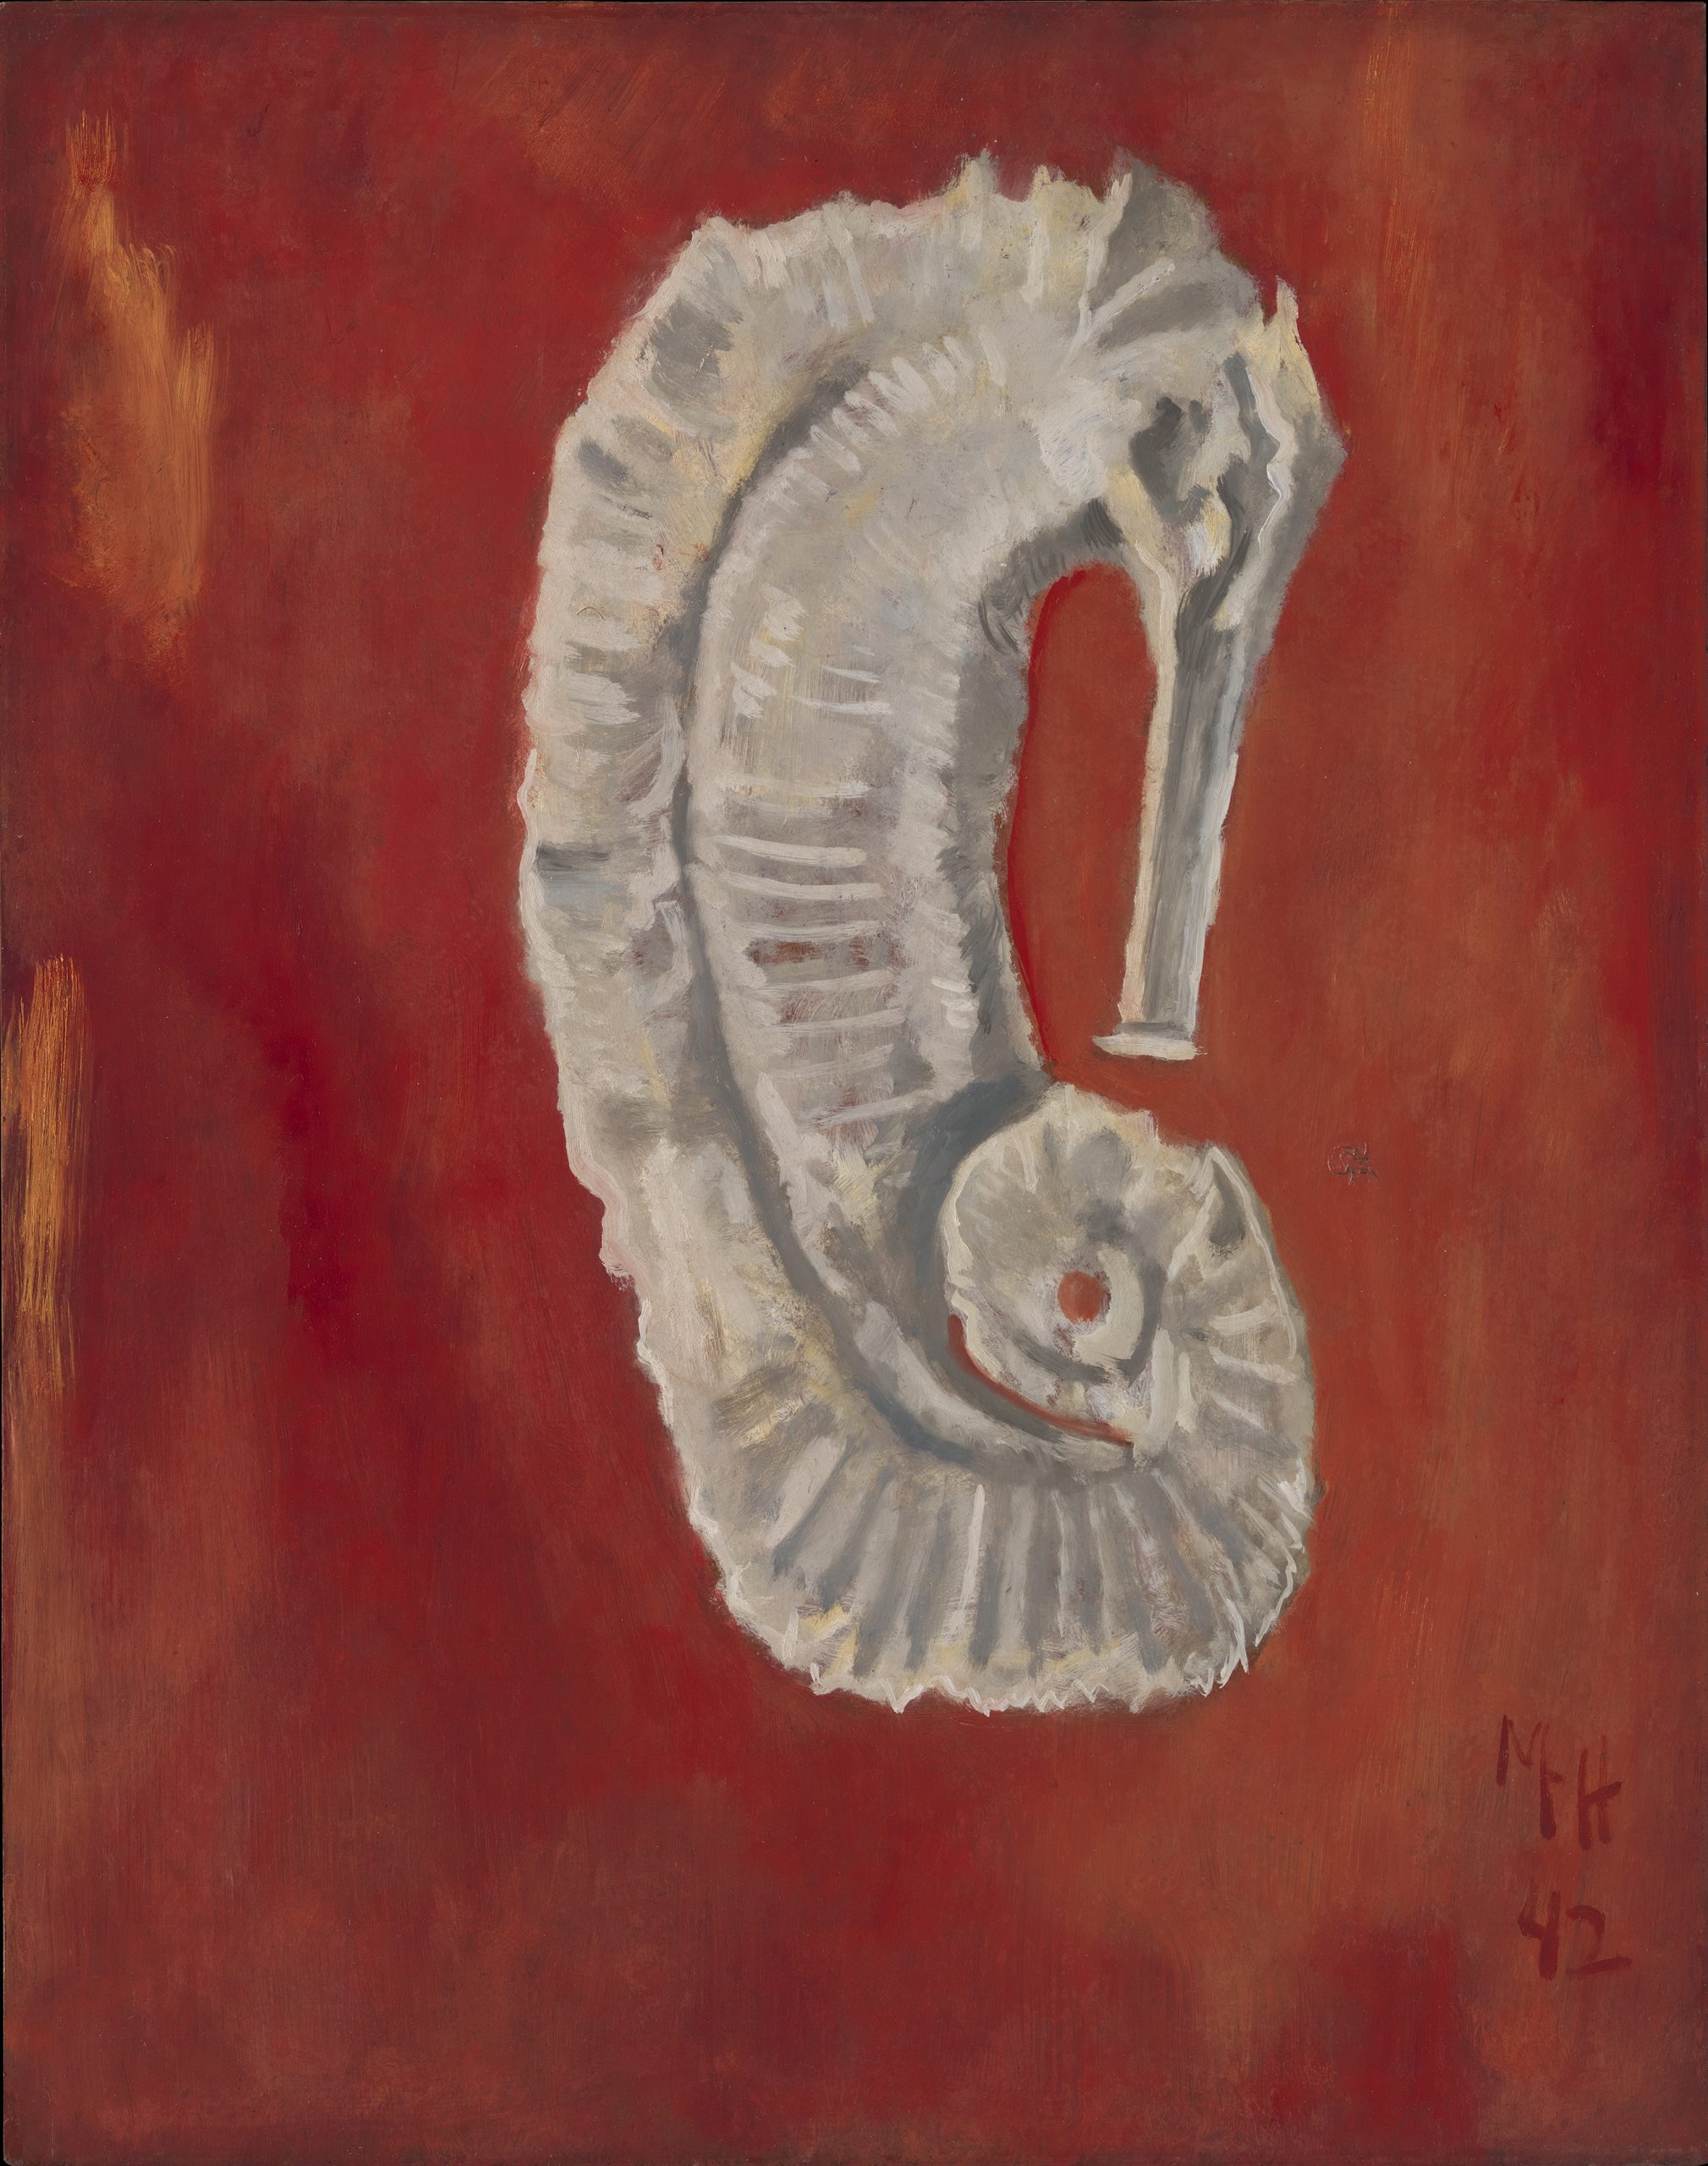 A white sea horse centered on a red background.